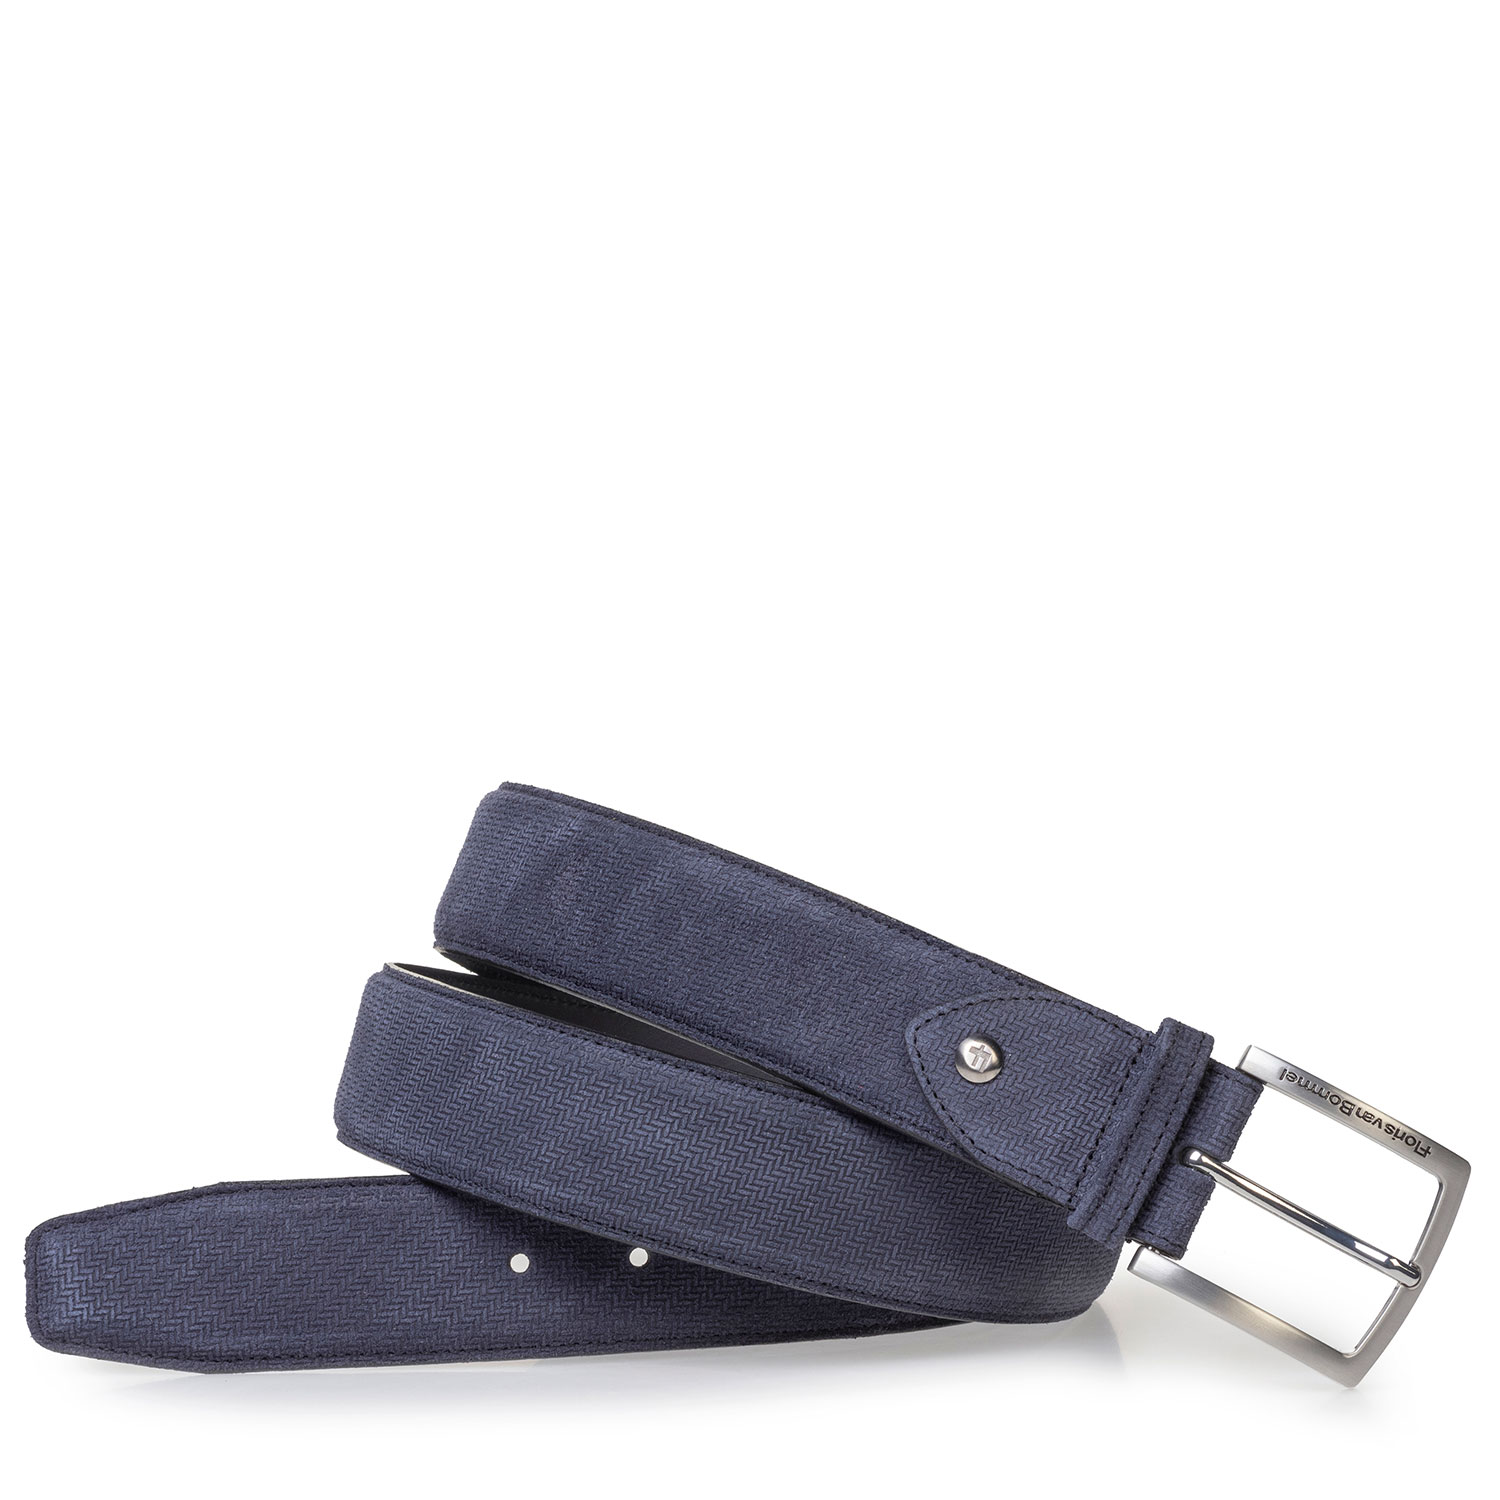 75202/49 - Blue suede leather belt with print